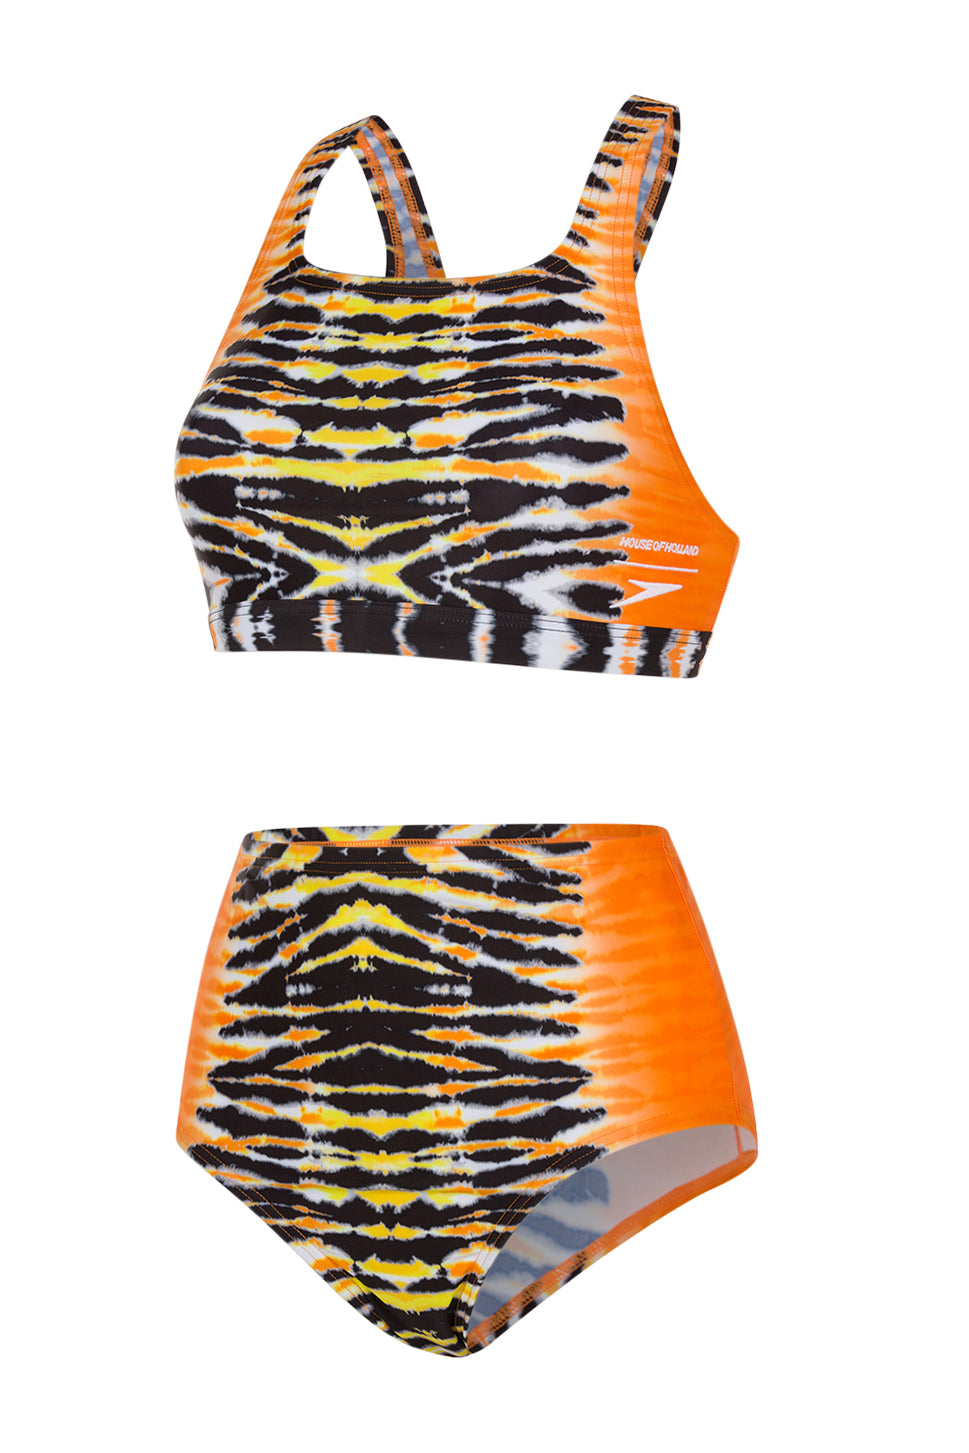 HoH x Speedo Ensemble de bain noir et orange Tie Dye